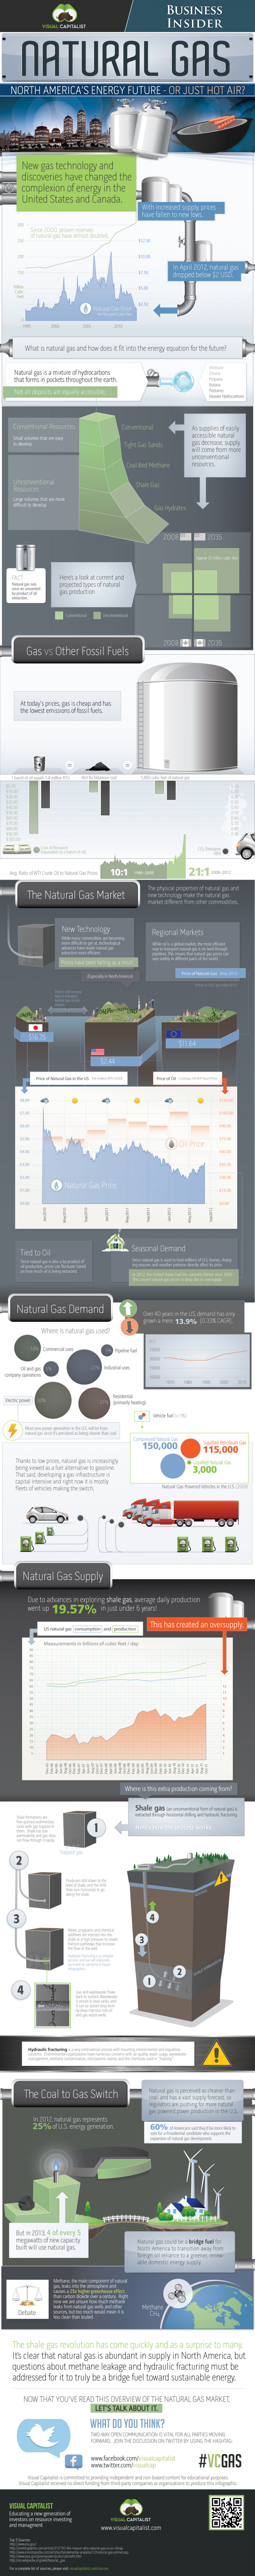 Natural Gas: North America's Energy Future, or Just Hot Air? Infographic